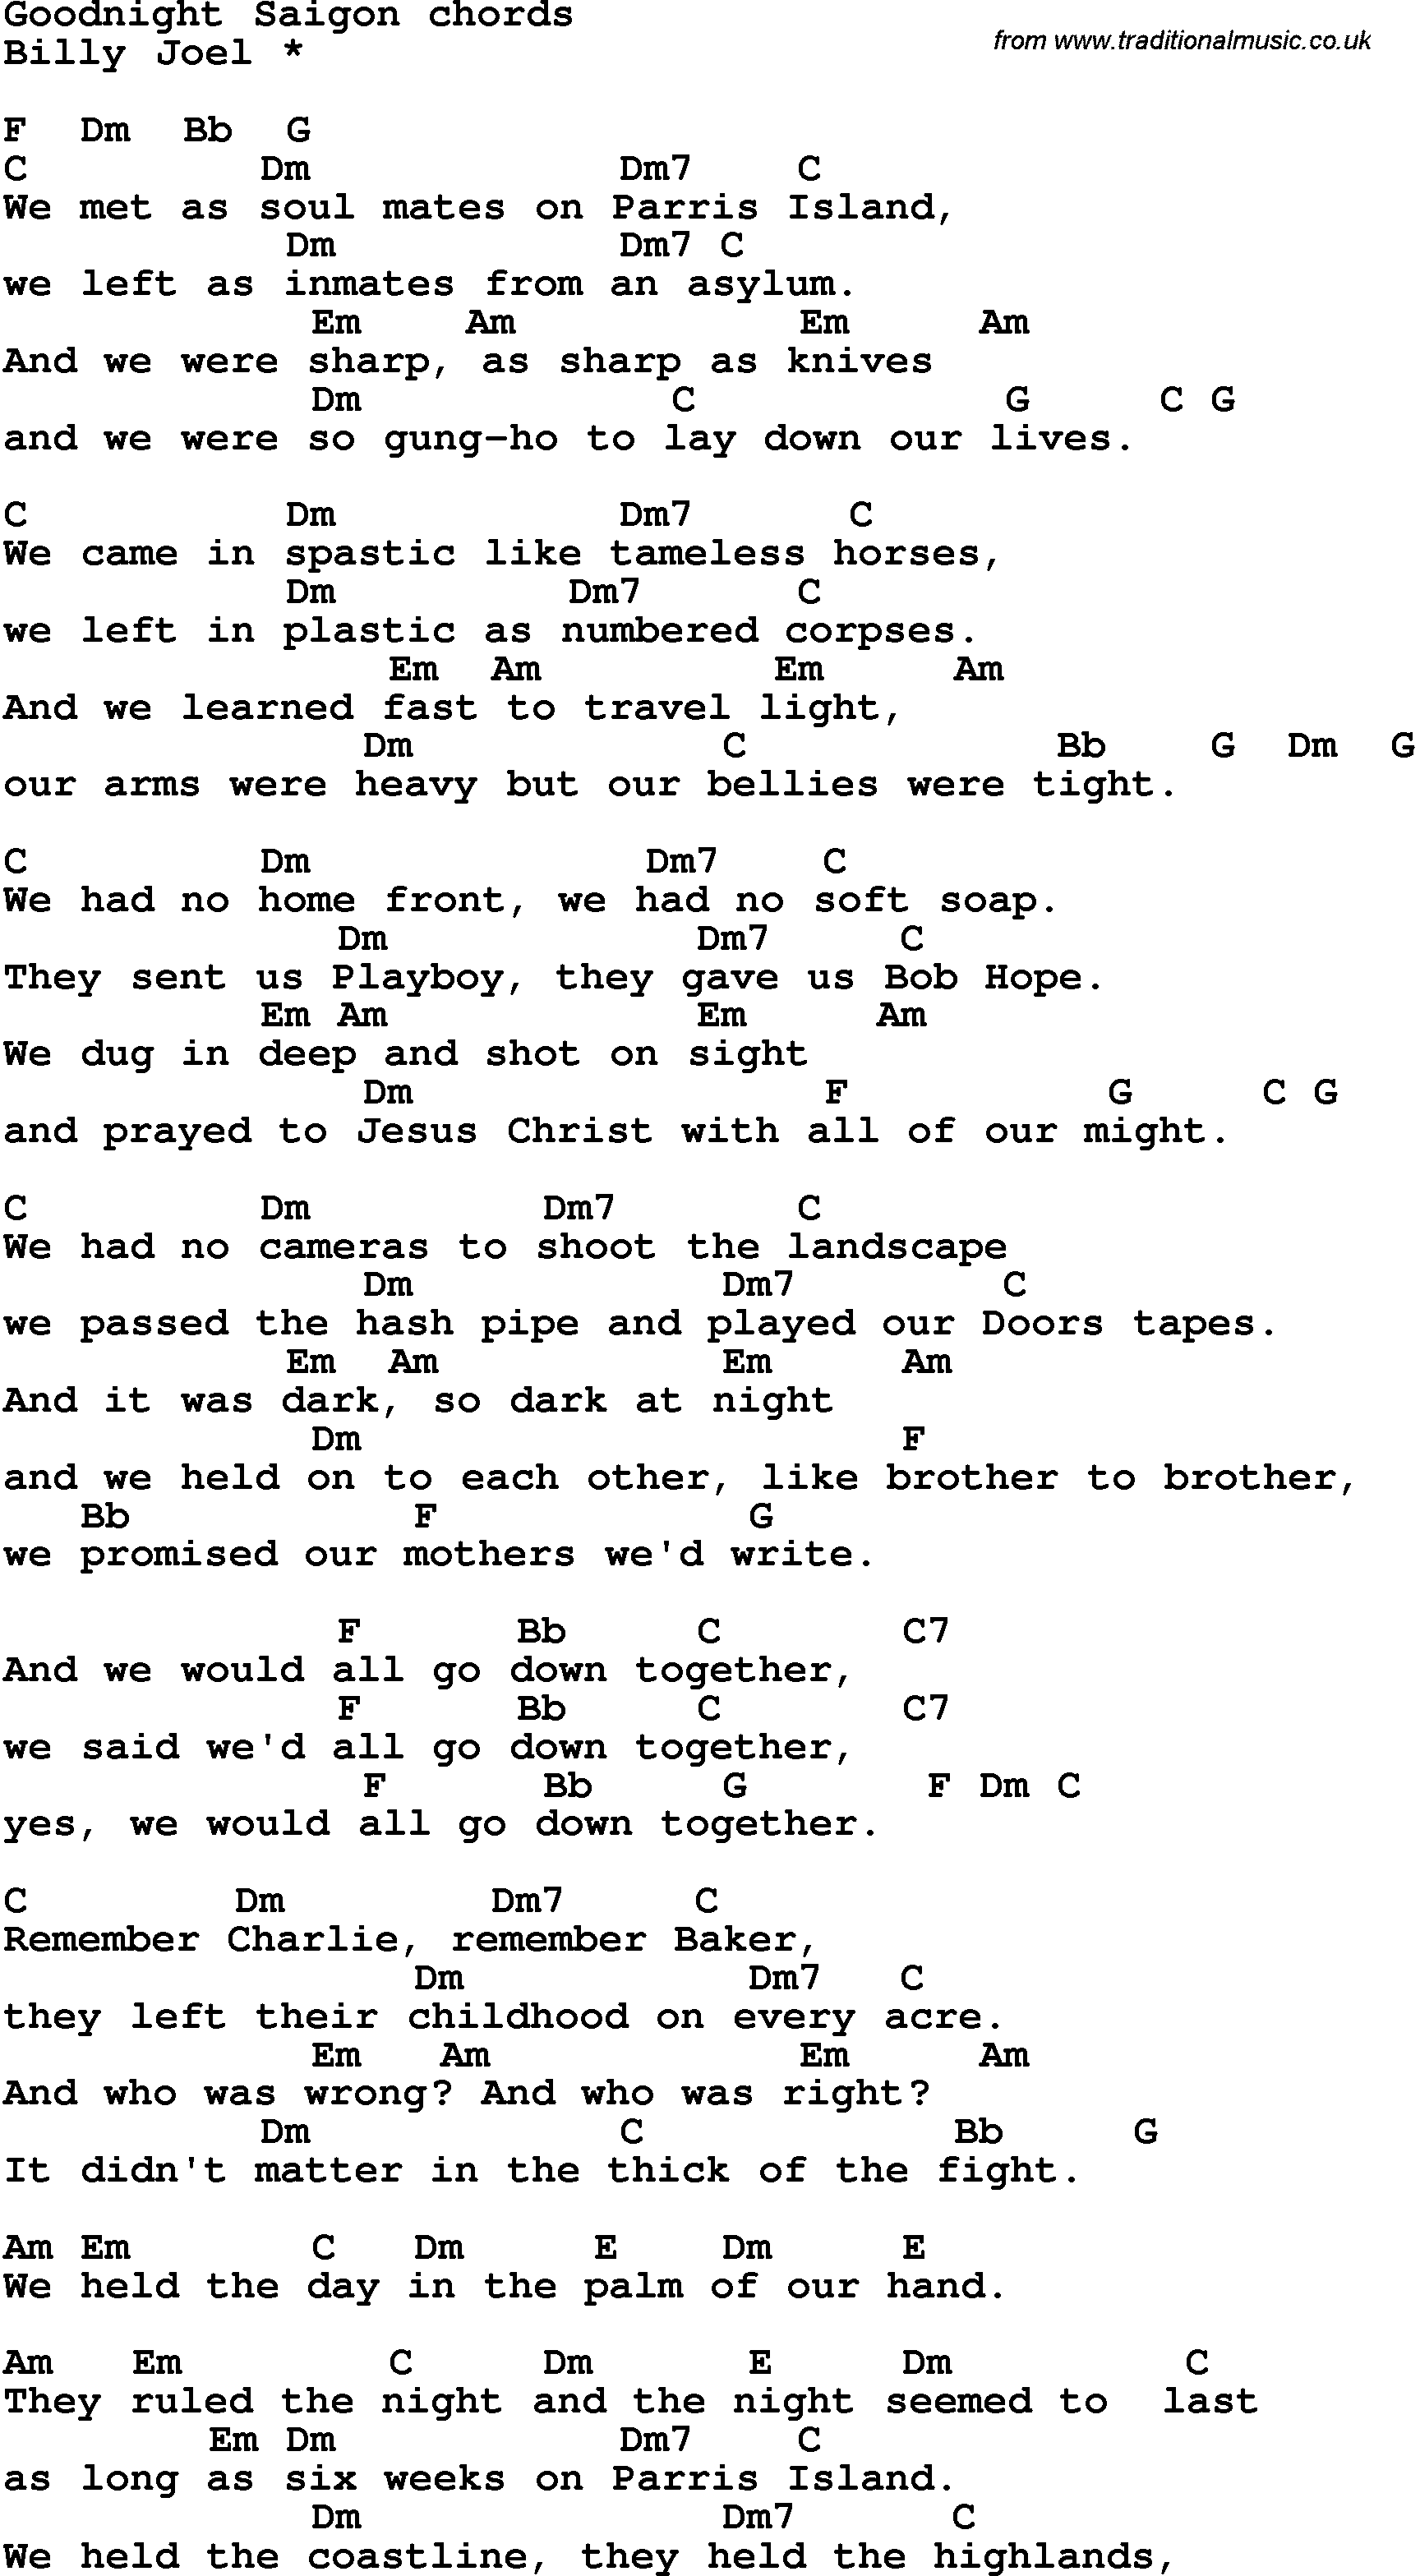 Song Lyrics With Guitar Chords For Goodnight Saigon